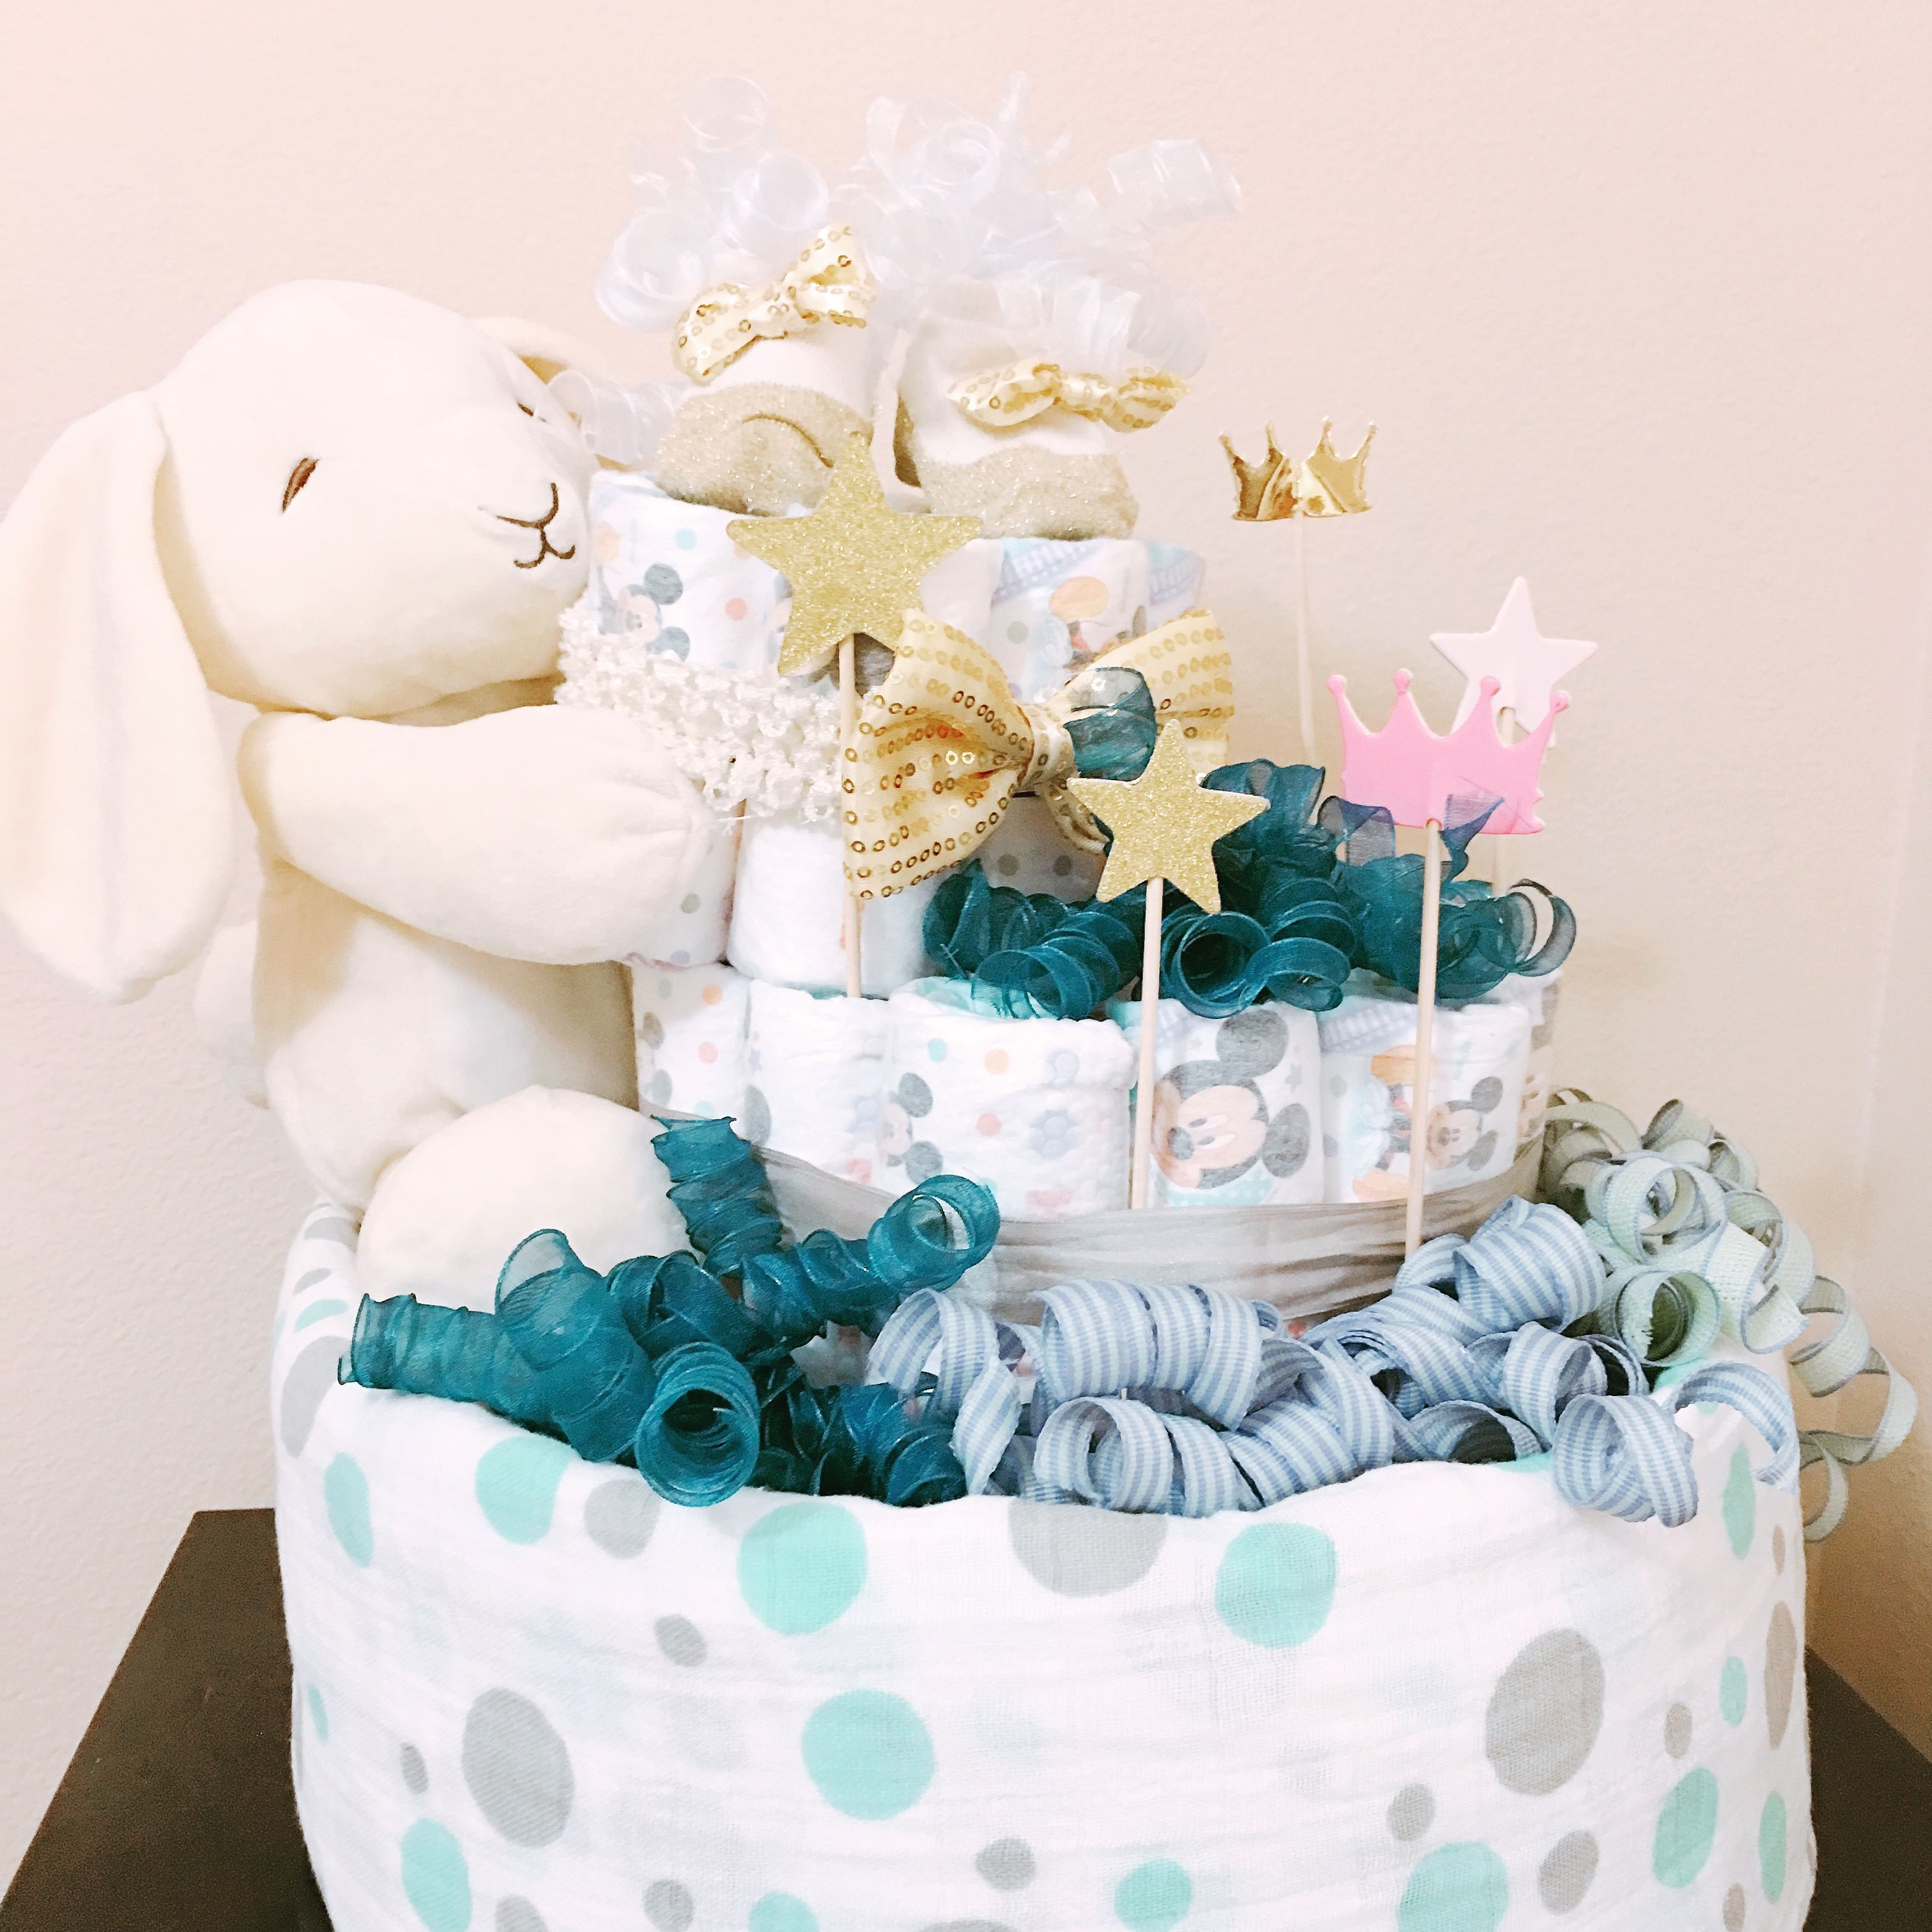 Bunny Diaper Cake for Baby Boy